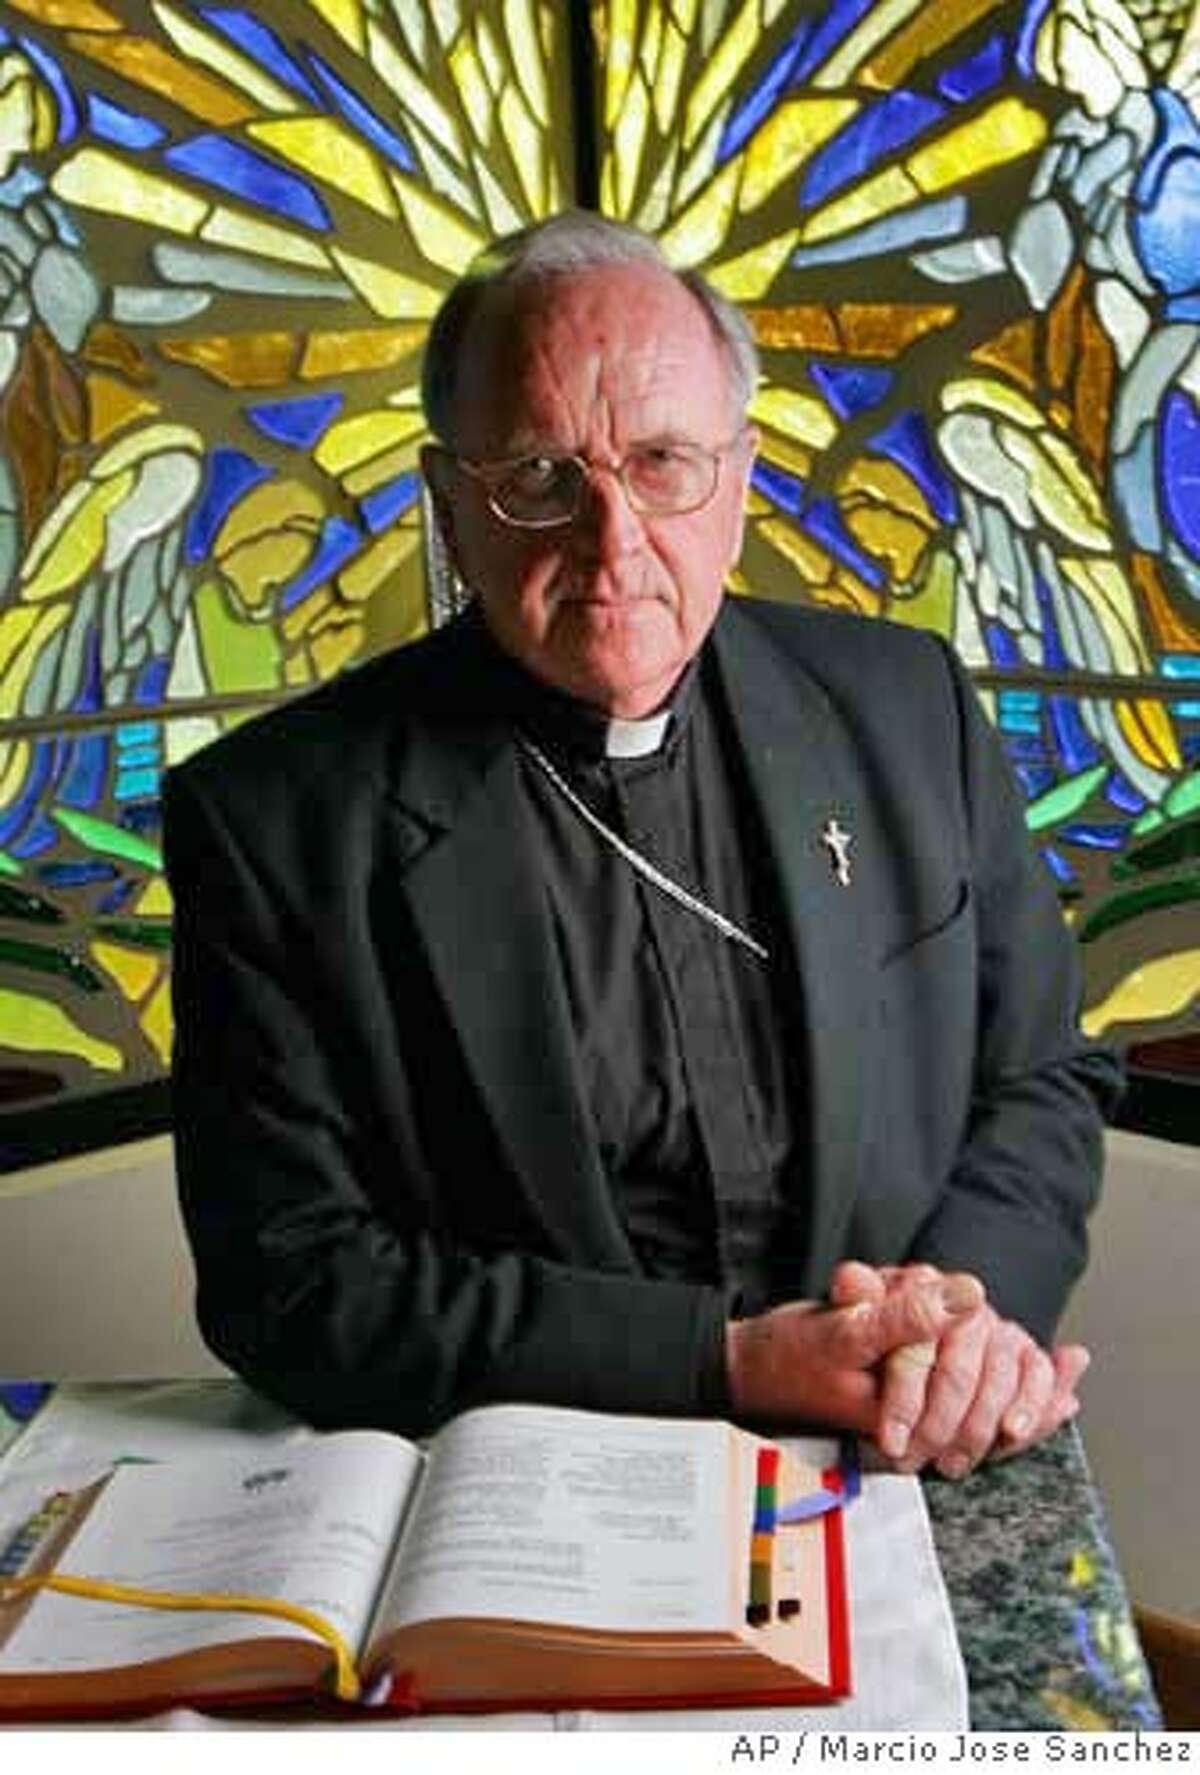 Bishop Daniel Walsh poses for a portrait in the chapel of the Santa Rosa Dioceses administrative office in Santa Rosa, Calif. on Tuesday, Aug. 15, 2006. Walsh could face criminal charges for his delay in reporting an admission of sexual abuse from a fellow priest. Authorities believe Walsh's delay allowed Rev. Xavier Ochoa to flee to Mexico. Ochoa faces 10 felony counts, including lewd acts with a child. (AP Photo/Marcio Jose Sanchez)